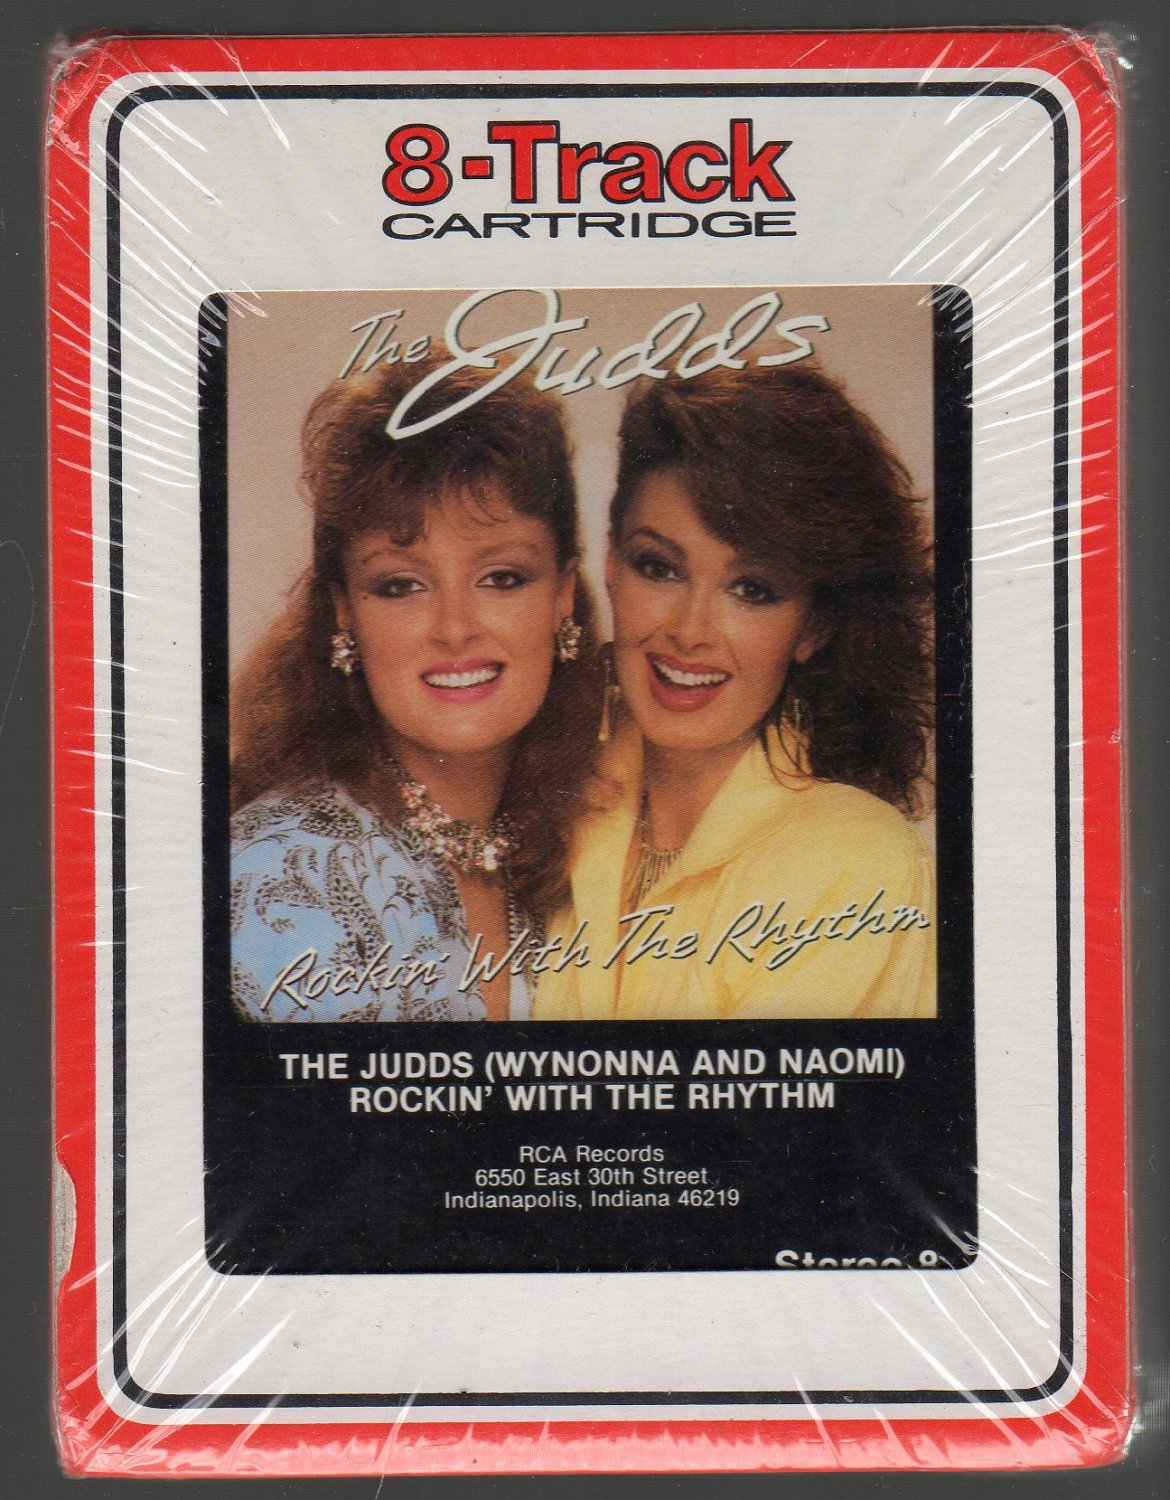 The Judds - Rockin' With The Rhythm 1985 RCA Sealed 8-track tape